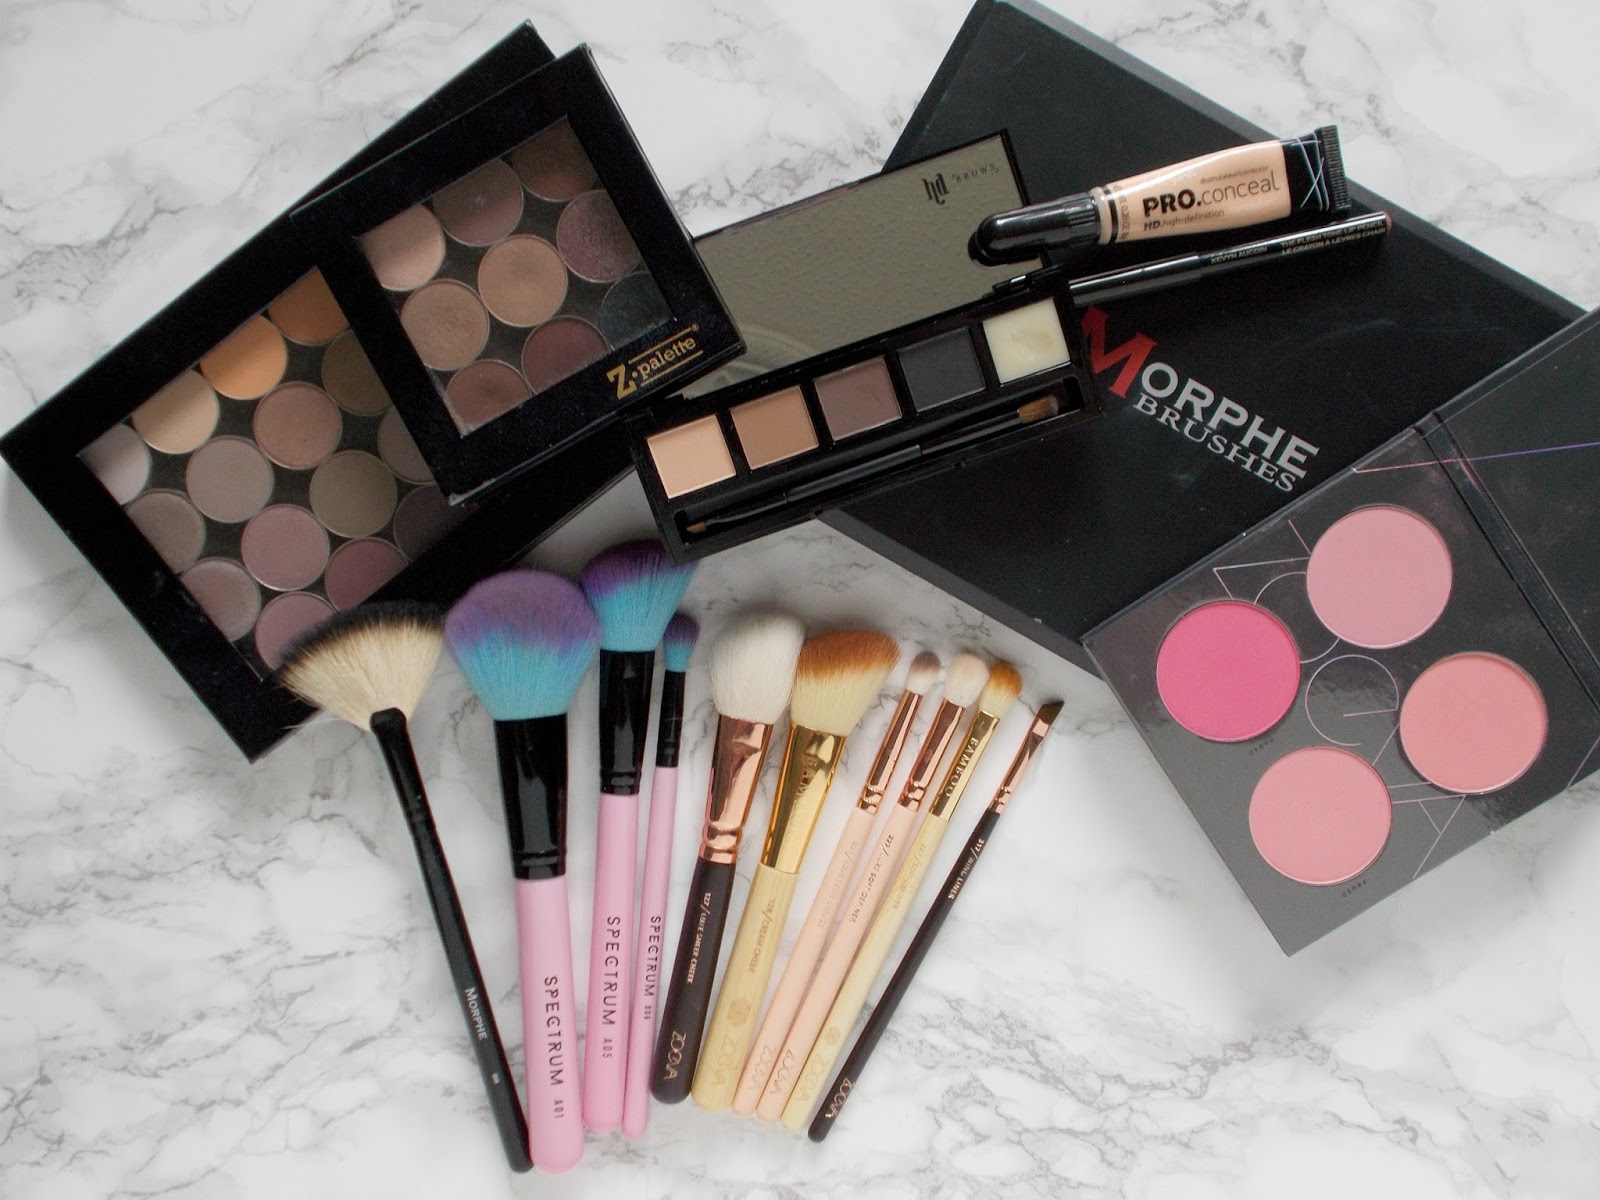 beauty bay haul online shoppping uk morphe makeup geek zoeva spectrum la girl hd brows z palette